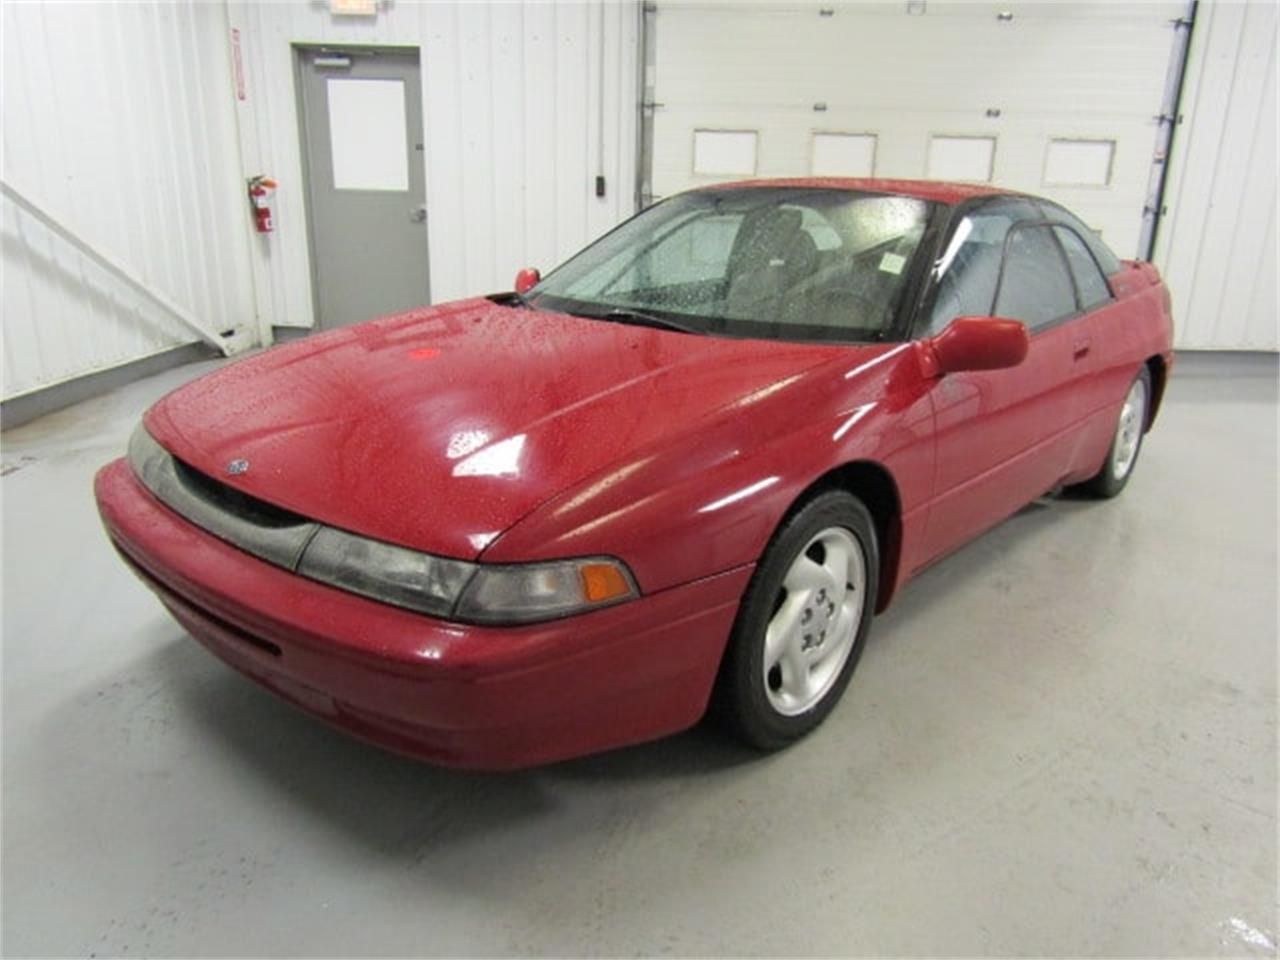 Large Picture of '94 Subaru SVX - $6,900.00 Offered by Duncan Imports & Classic Cars - LN5Q